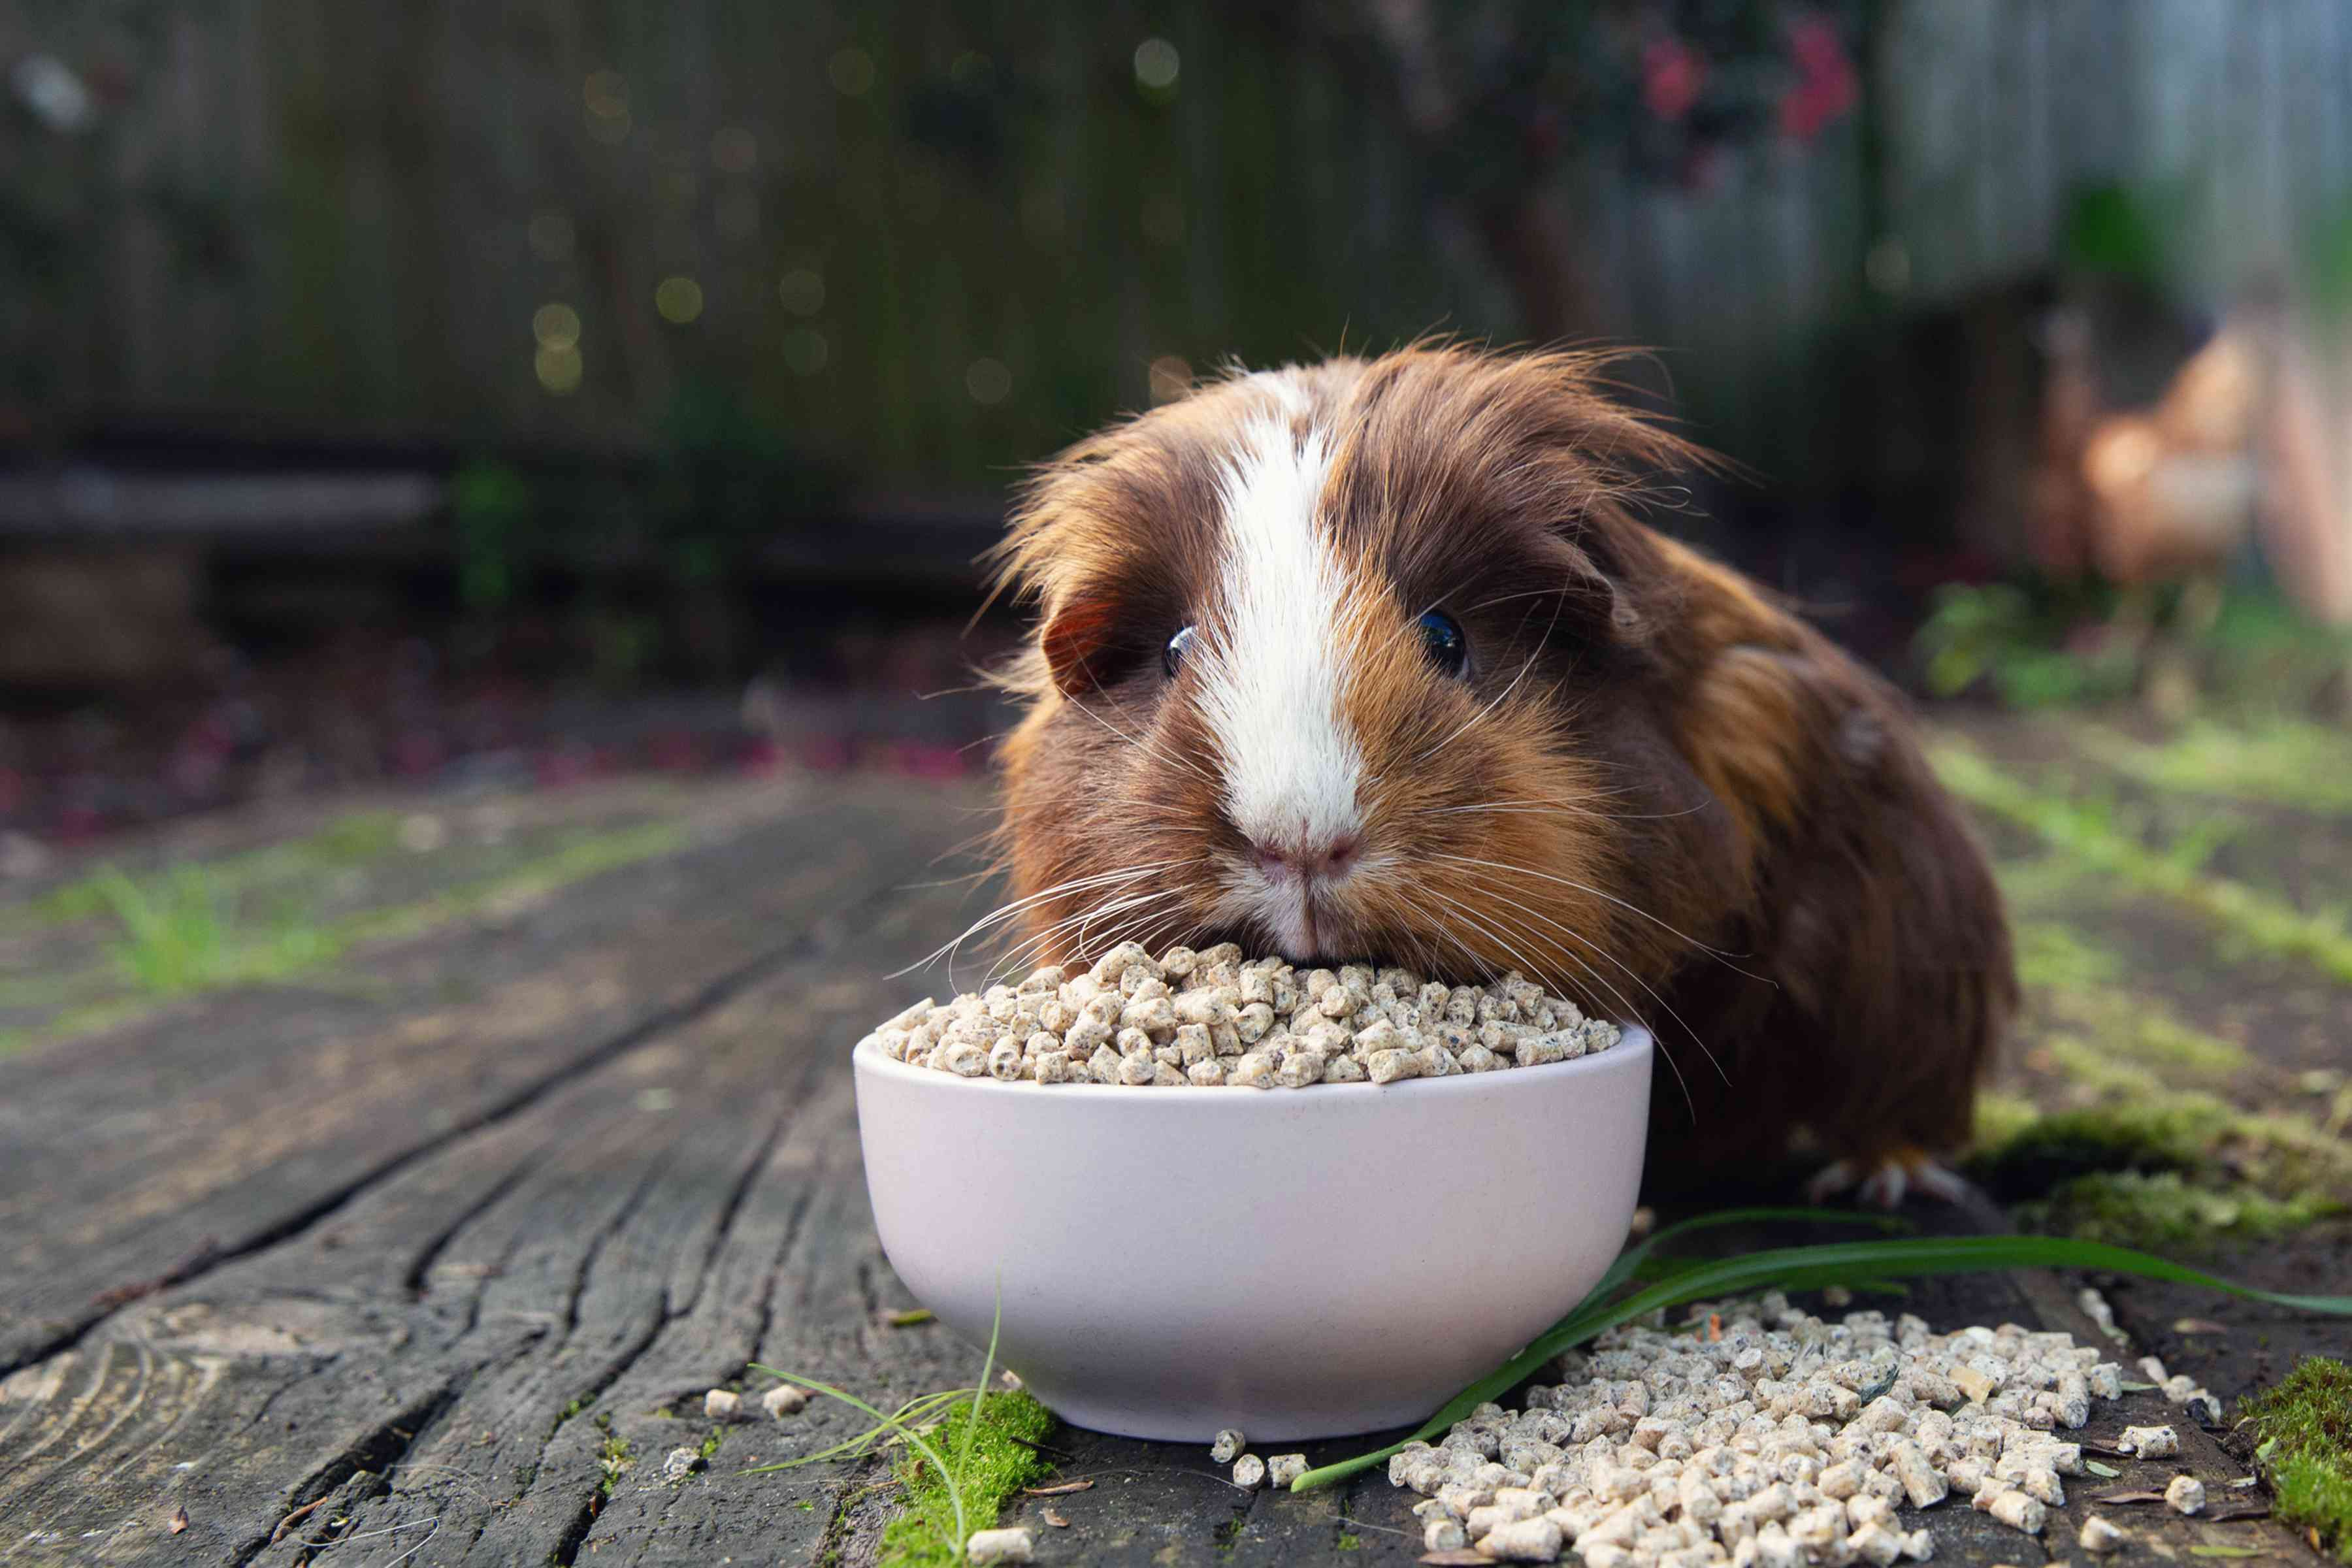 Brown and white guinea pig eating store-bought food from small bowl